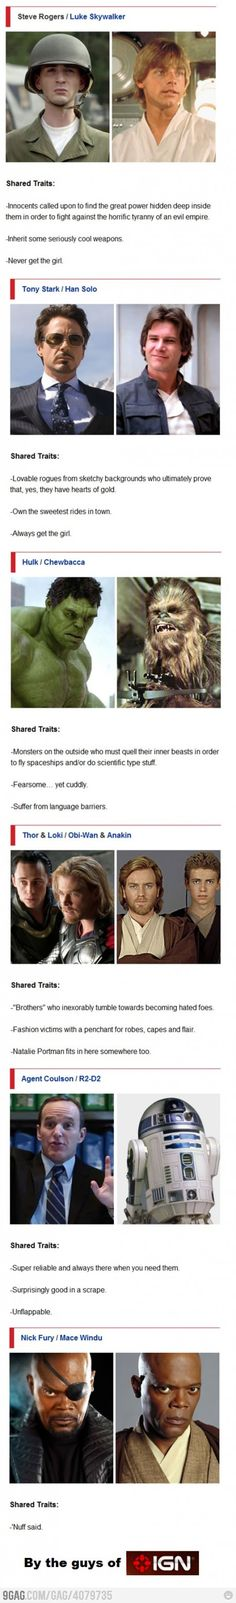 Parallels between Avengers and the world of Star Wars.